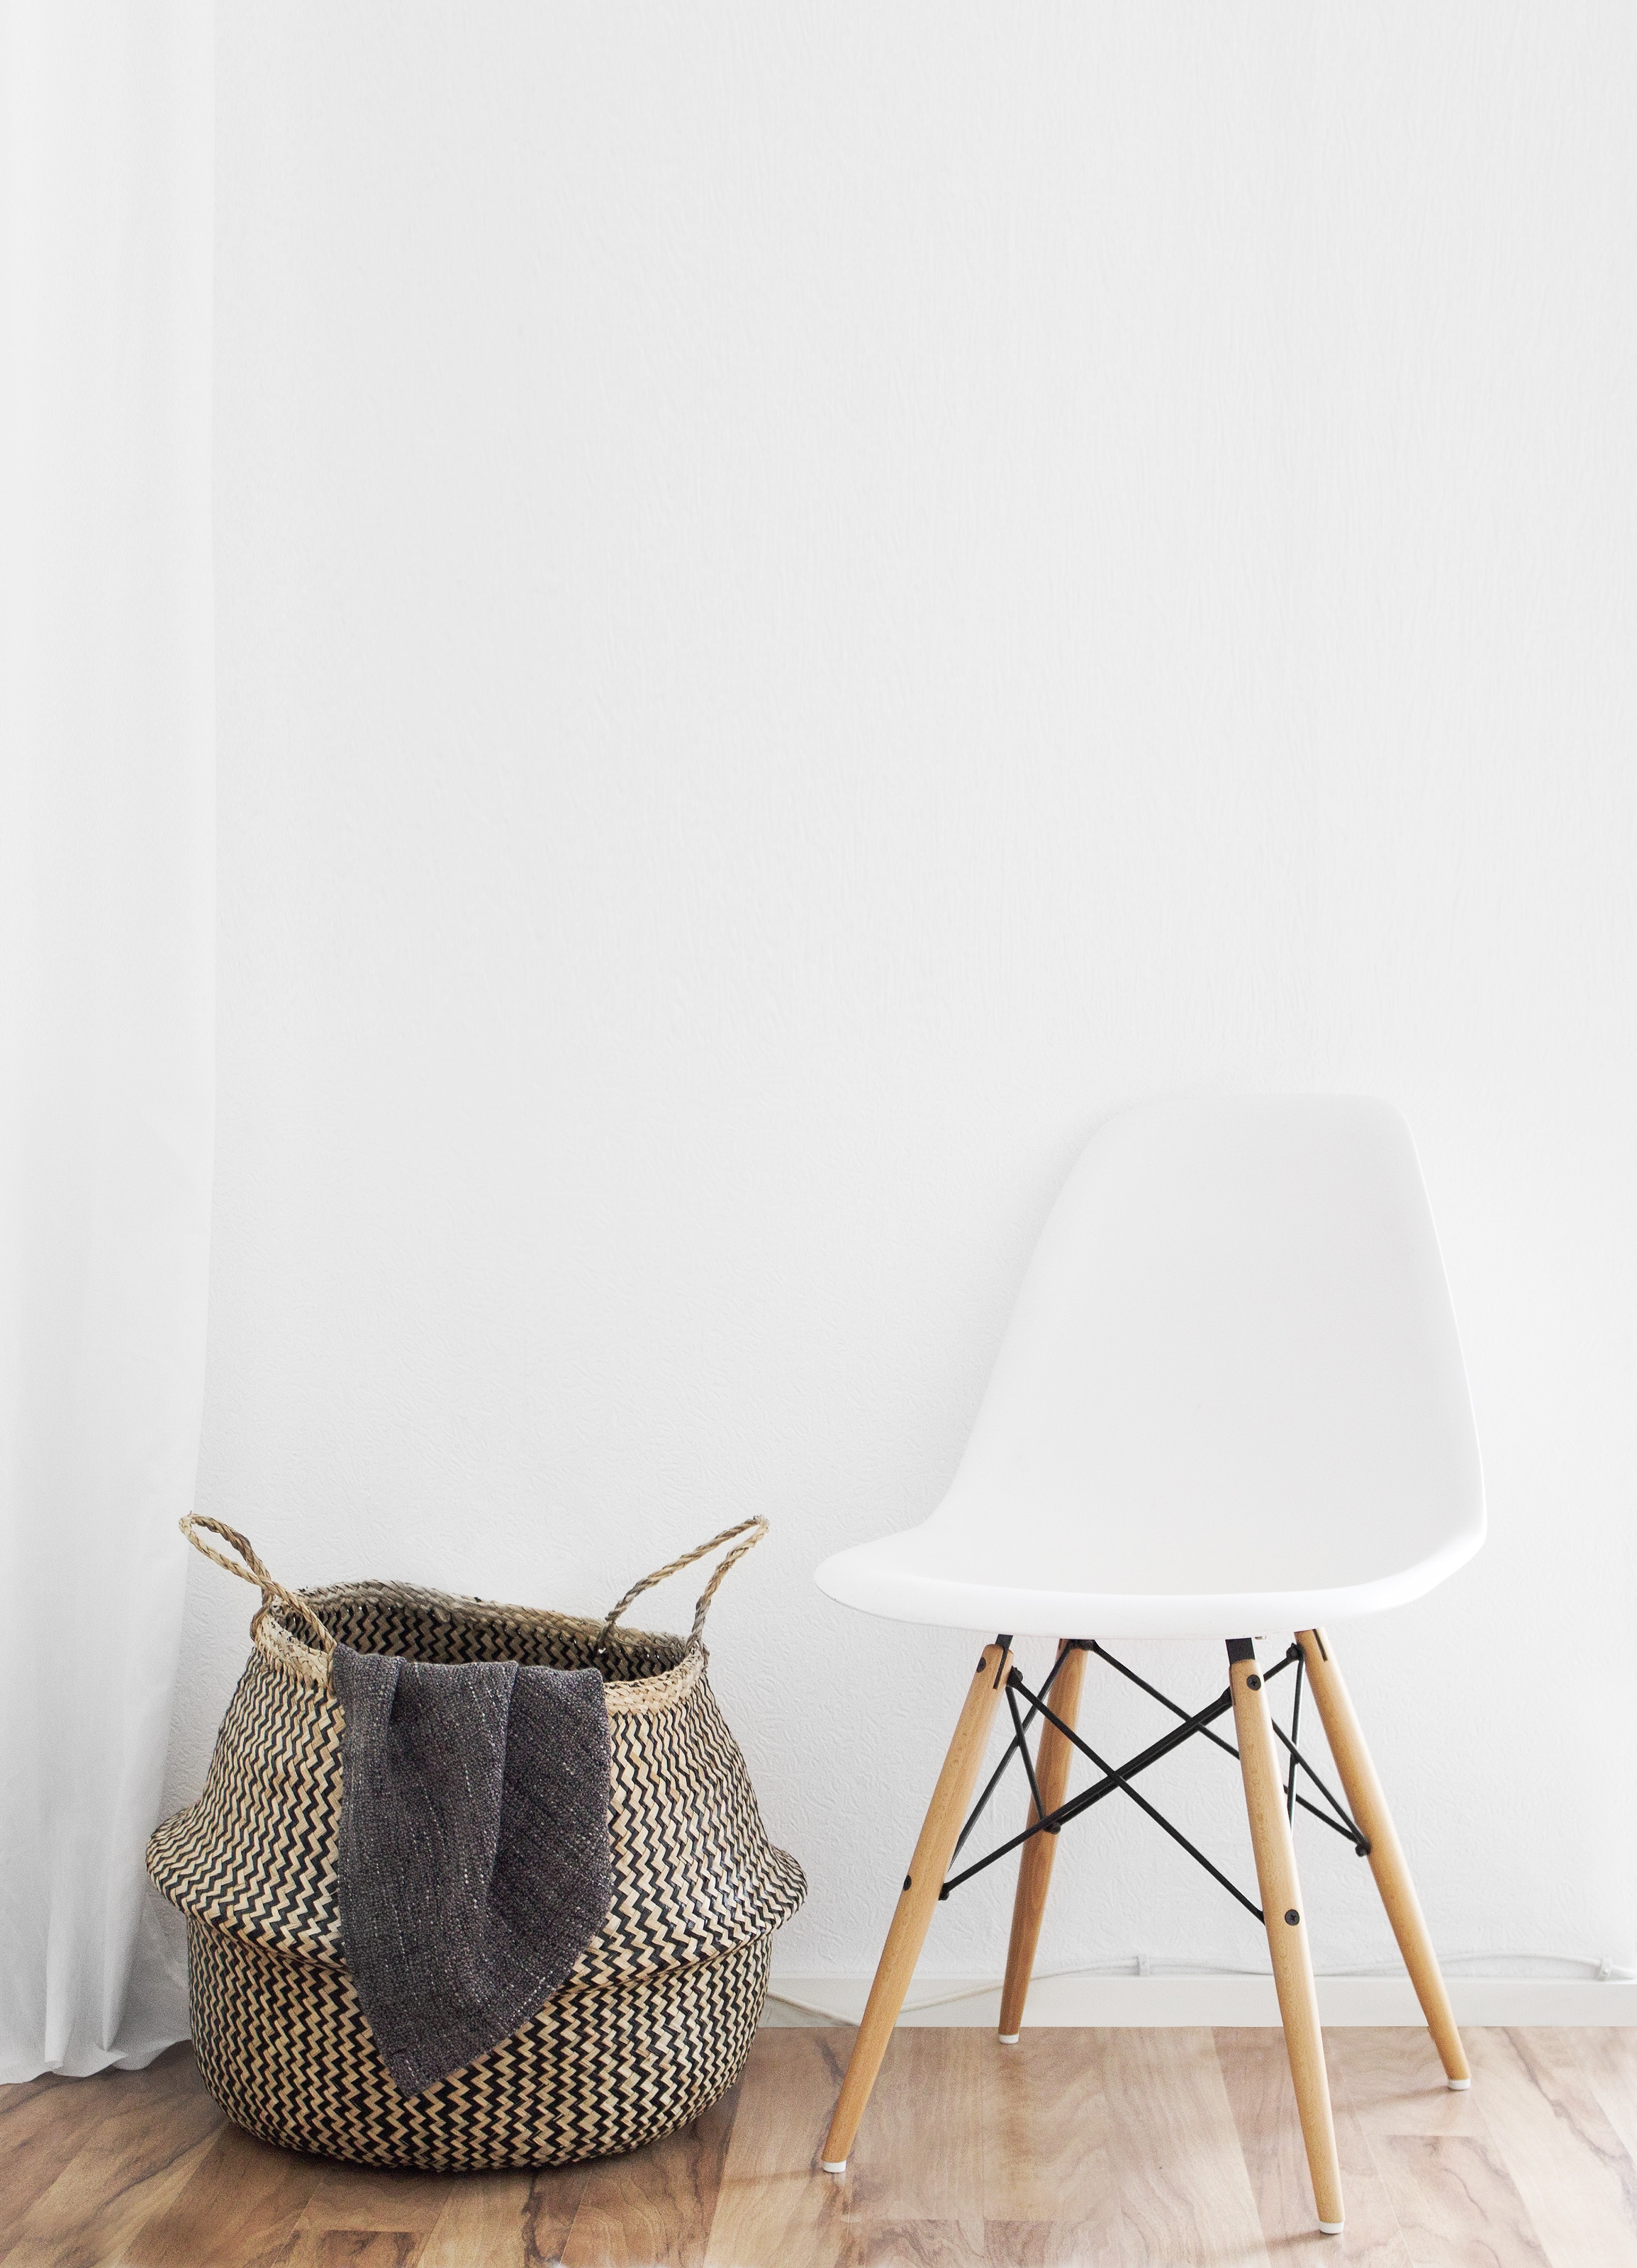 white eames chair with a laundry basket next to it